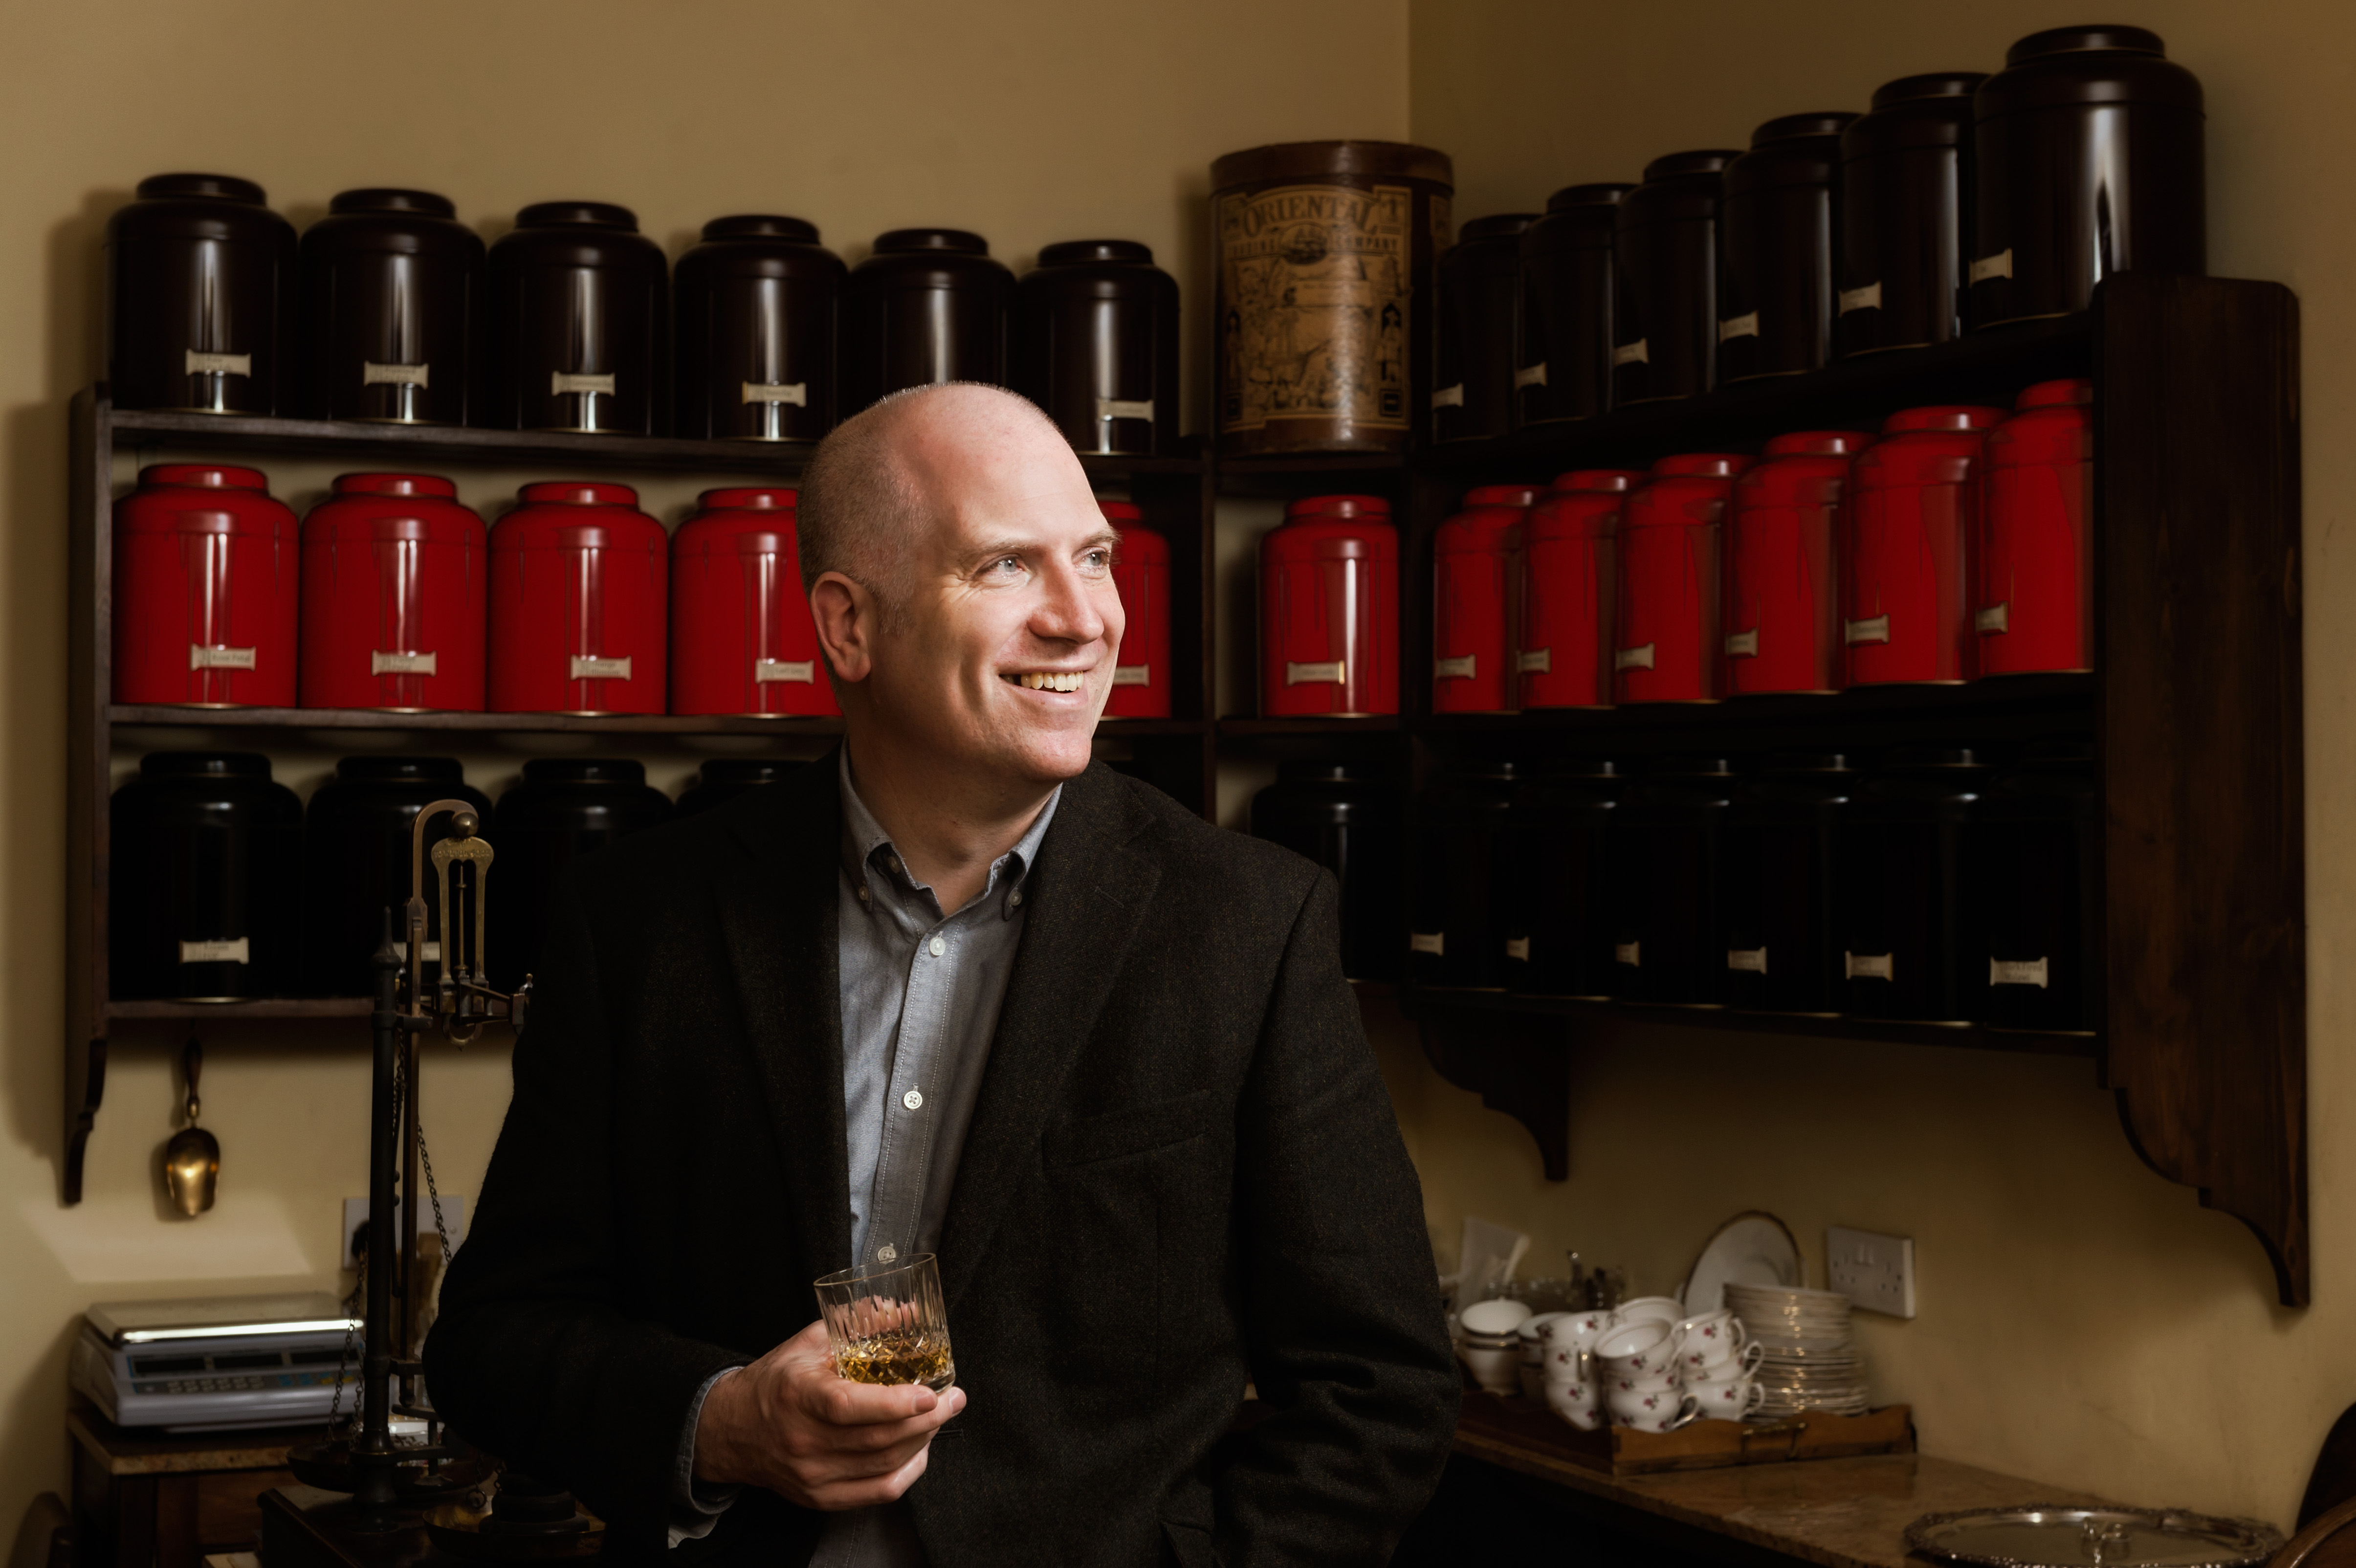 David Introduces the Secret Still - Rare Exclusives from Craft Whisky Club